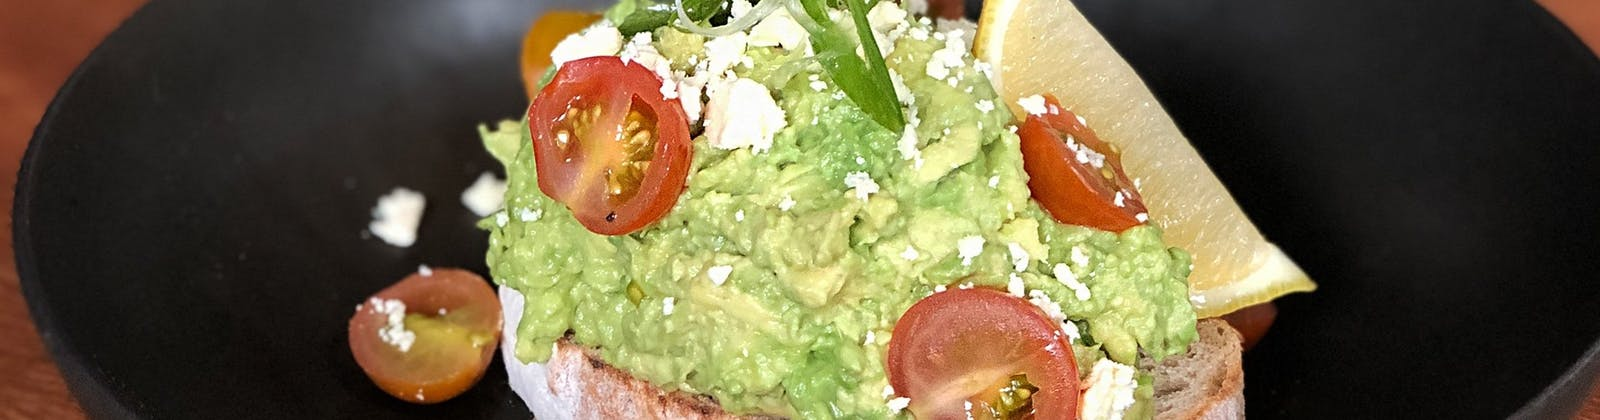 avocado on toast from joes garage